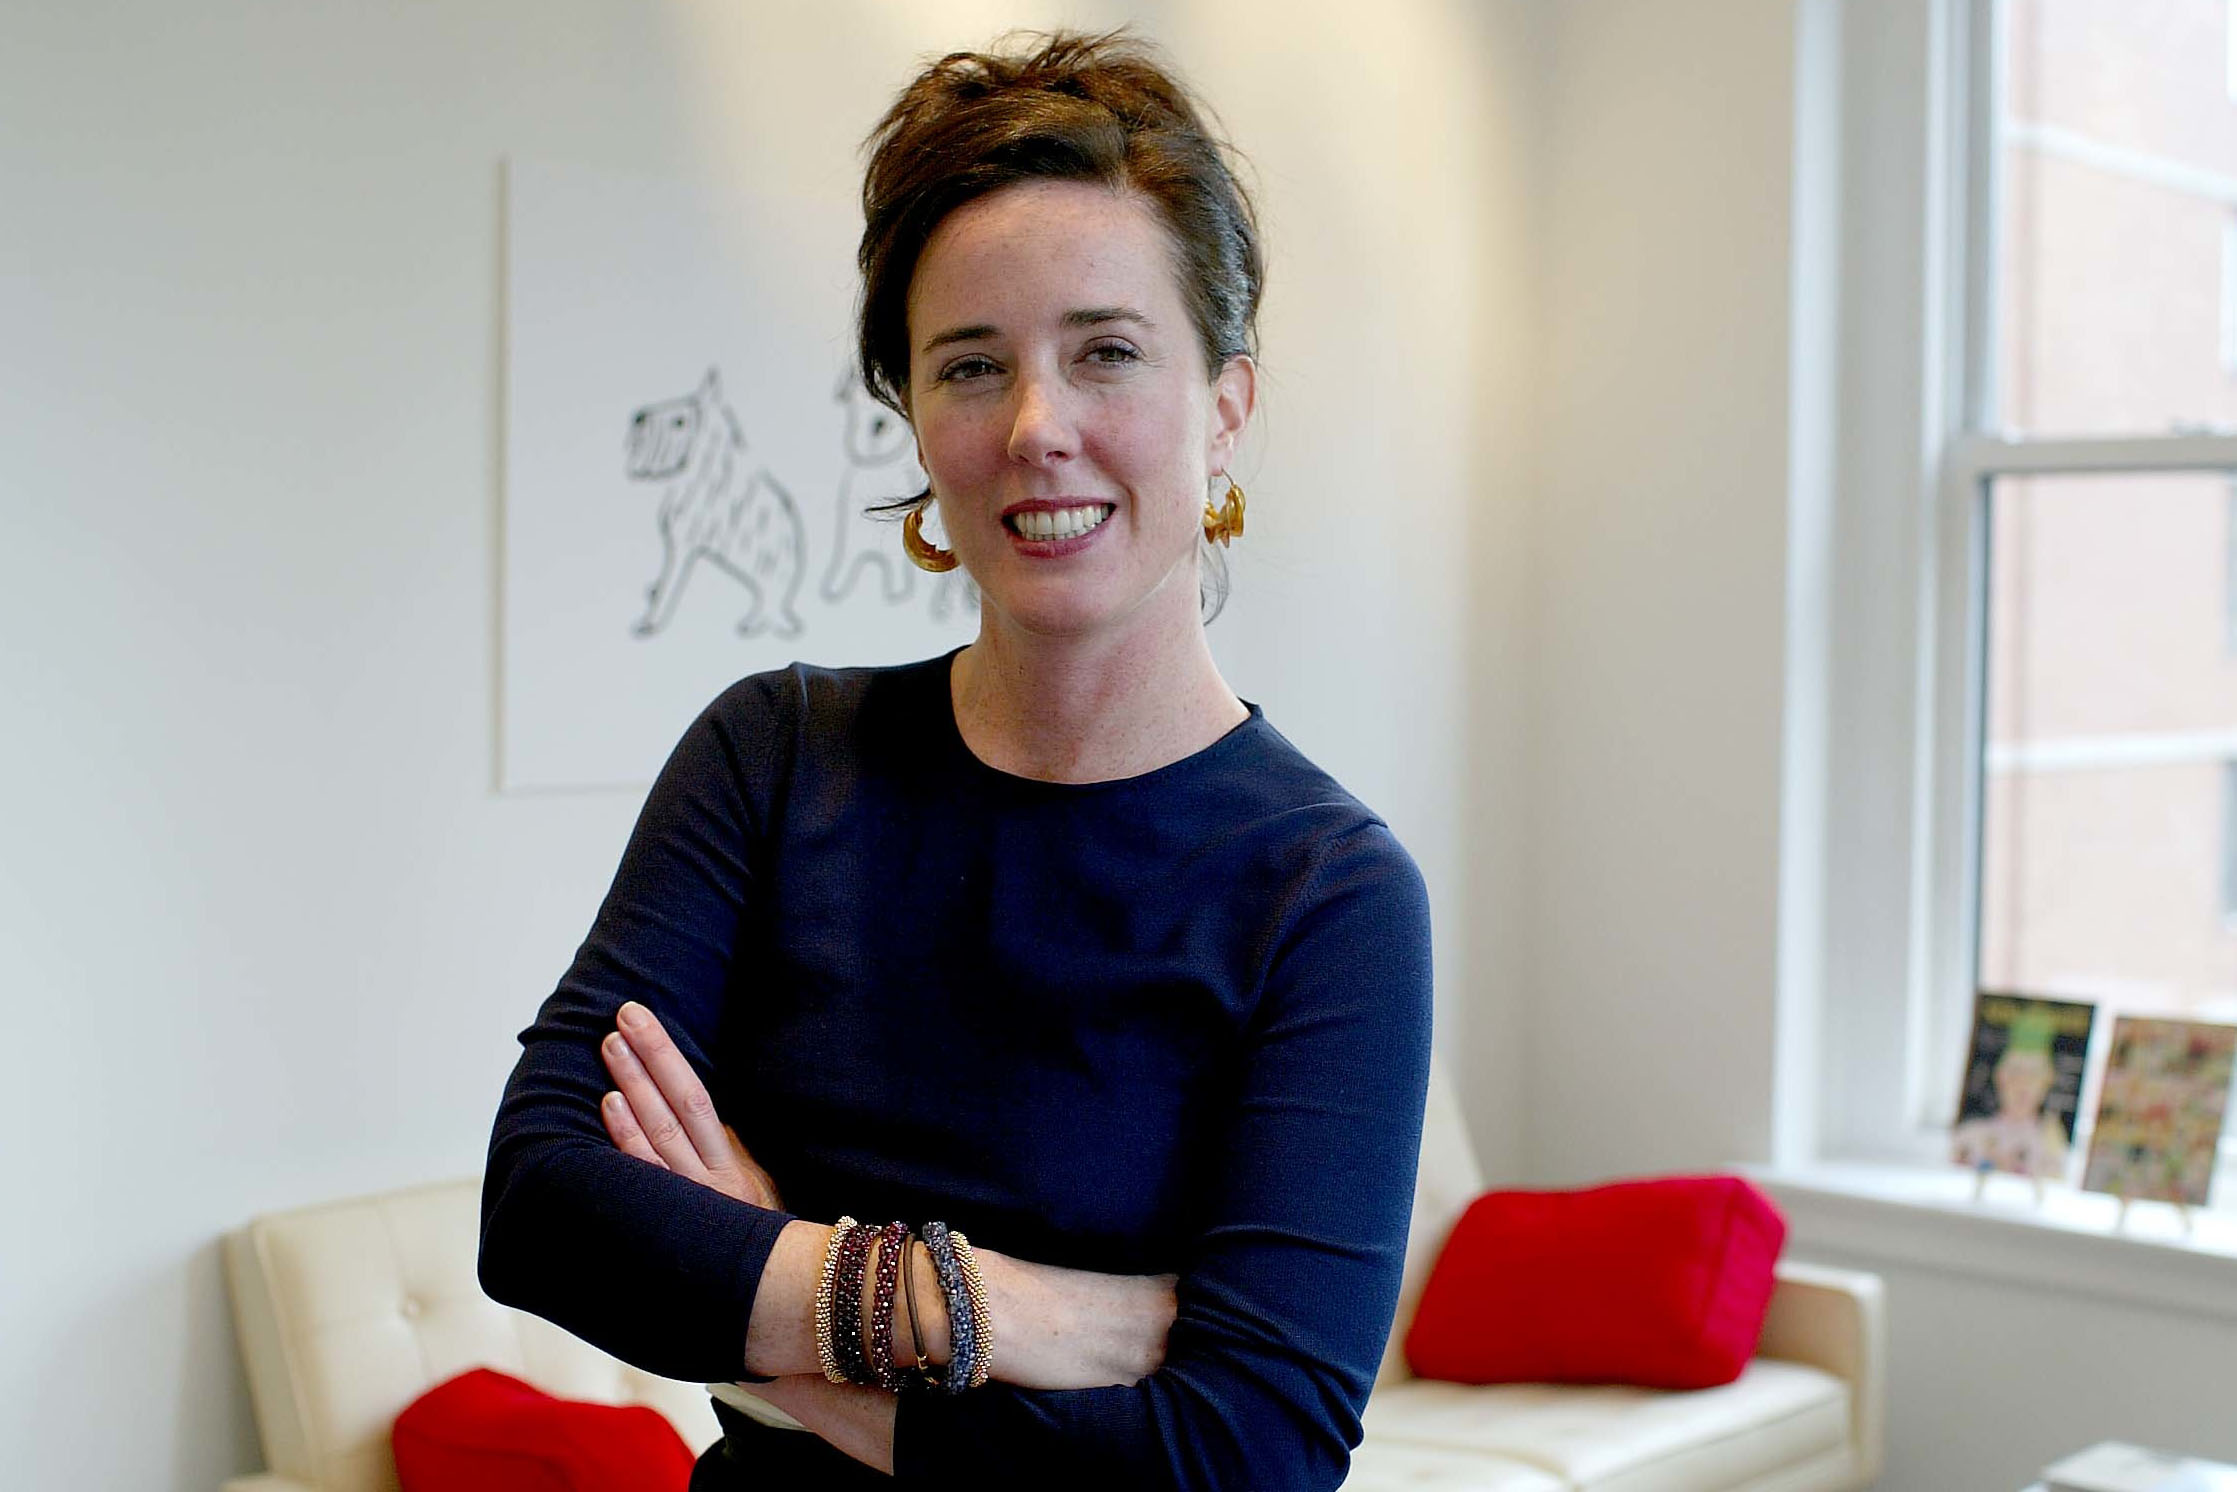 Upcoming Kate Spade Biography Sets Nerves On Edge